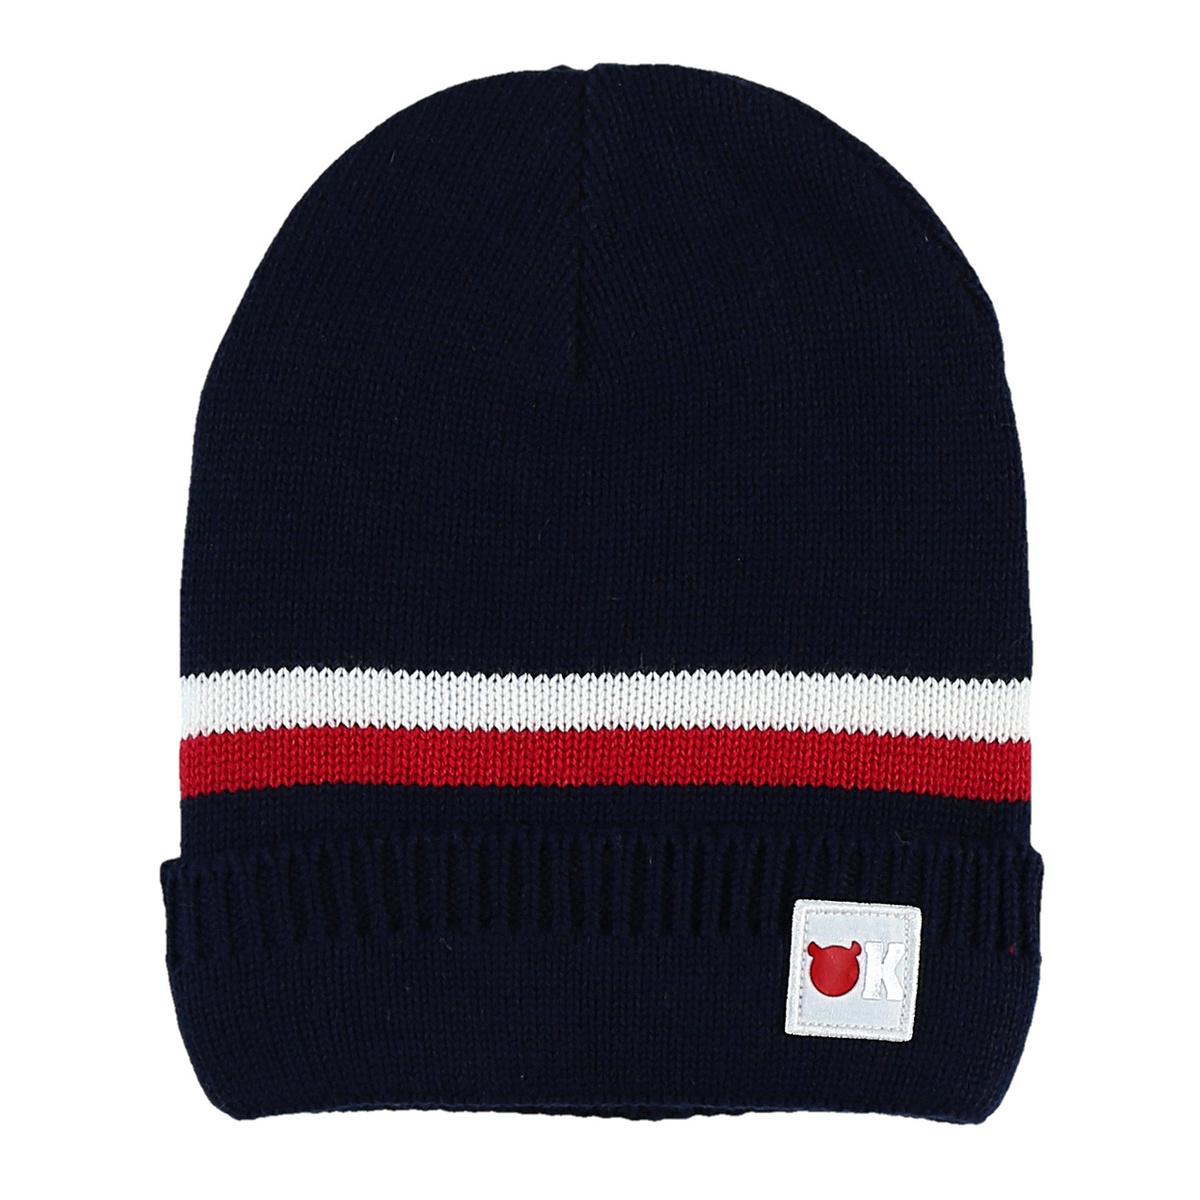 Knitted navy blue beanie